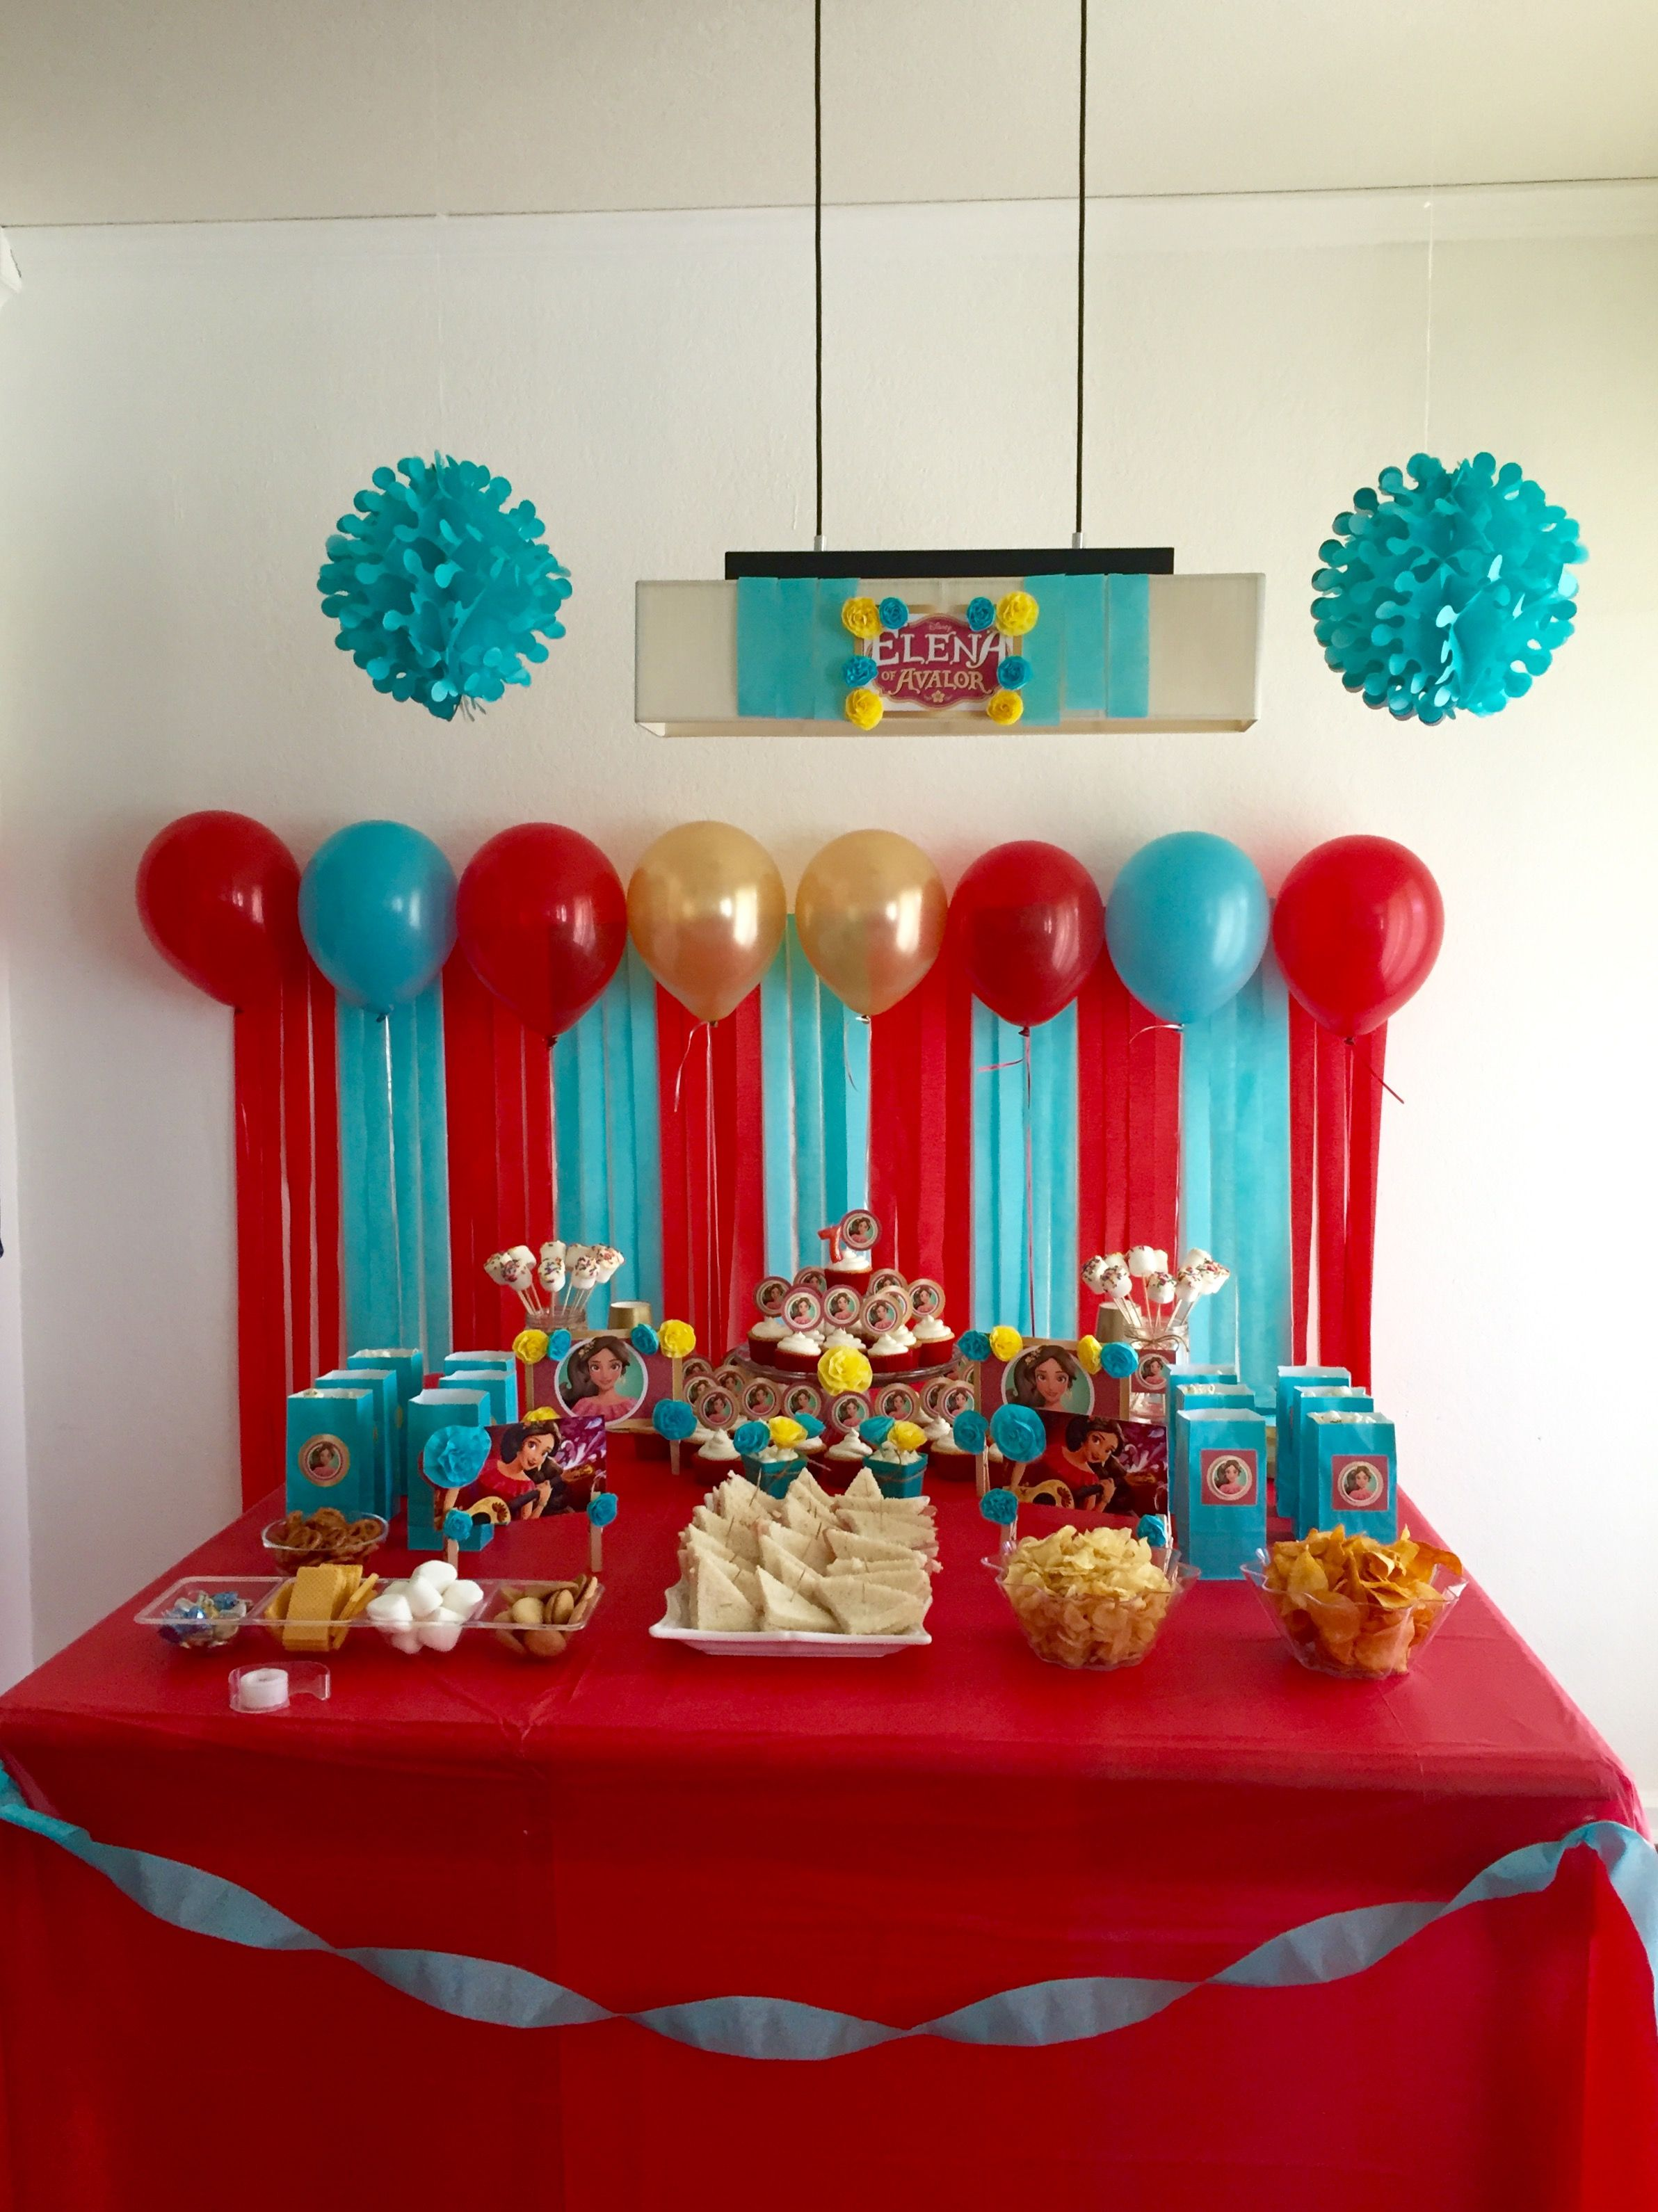 Elena Of Avalor Party Princess Birthday Red Decorations